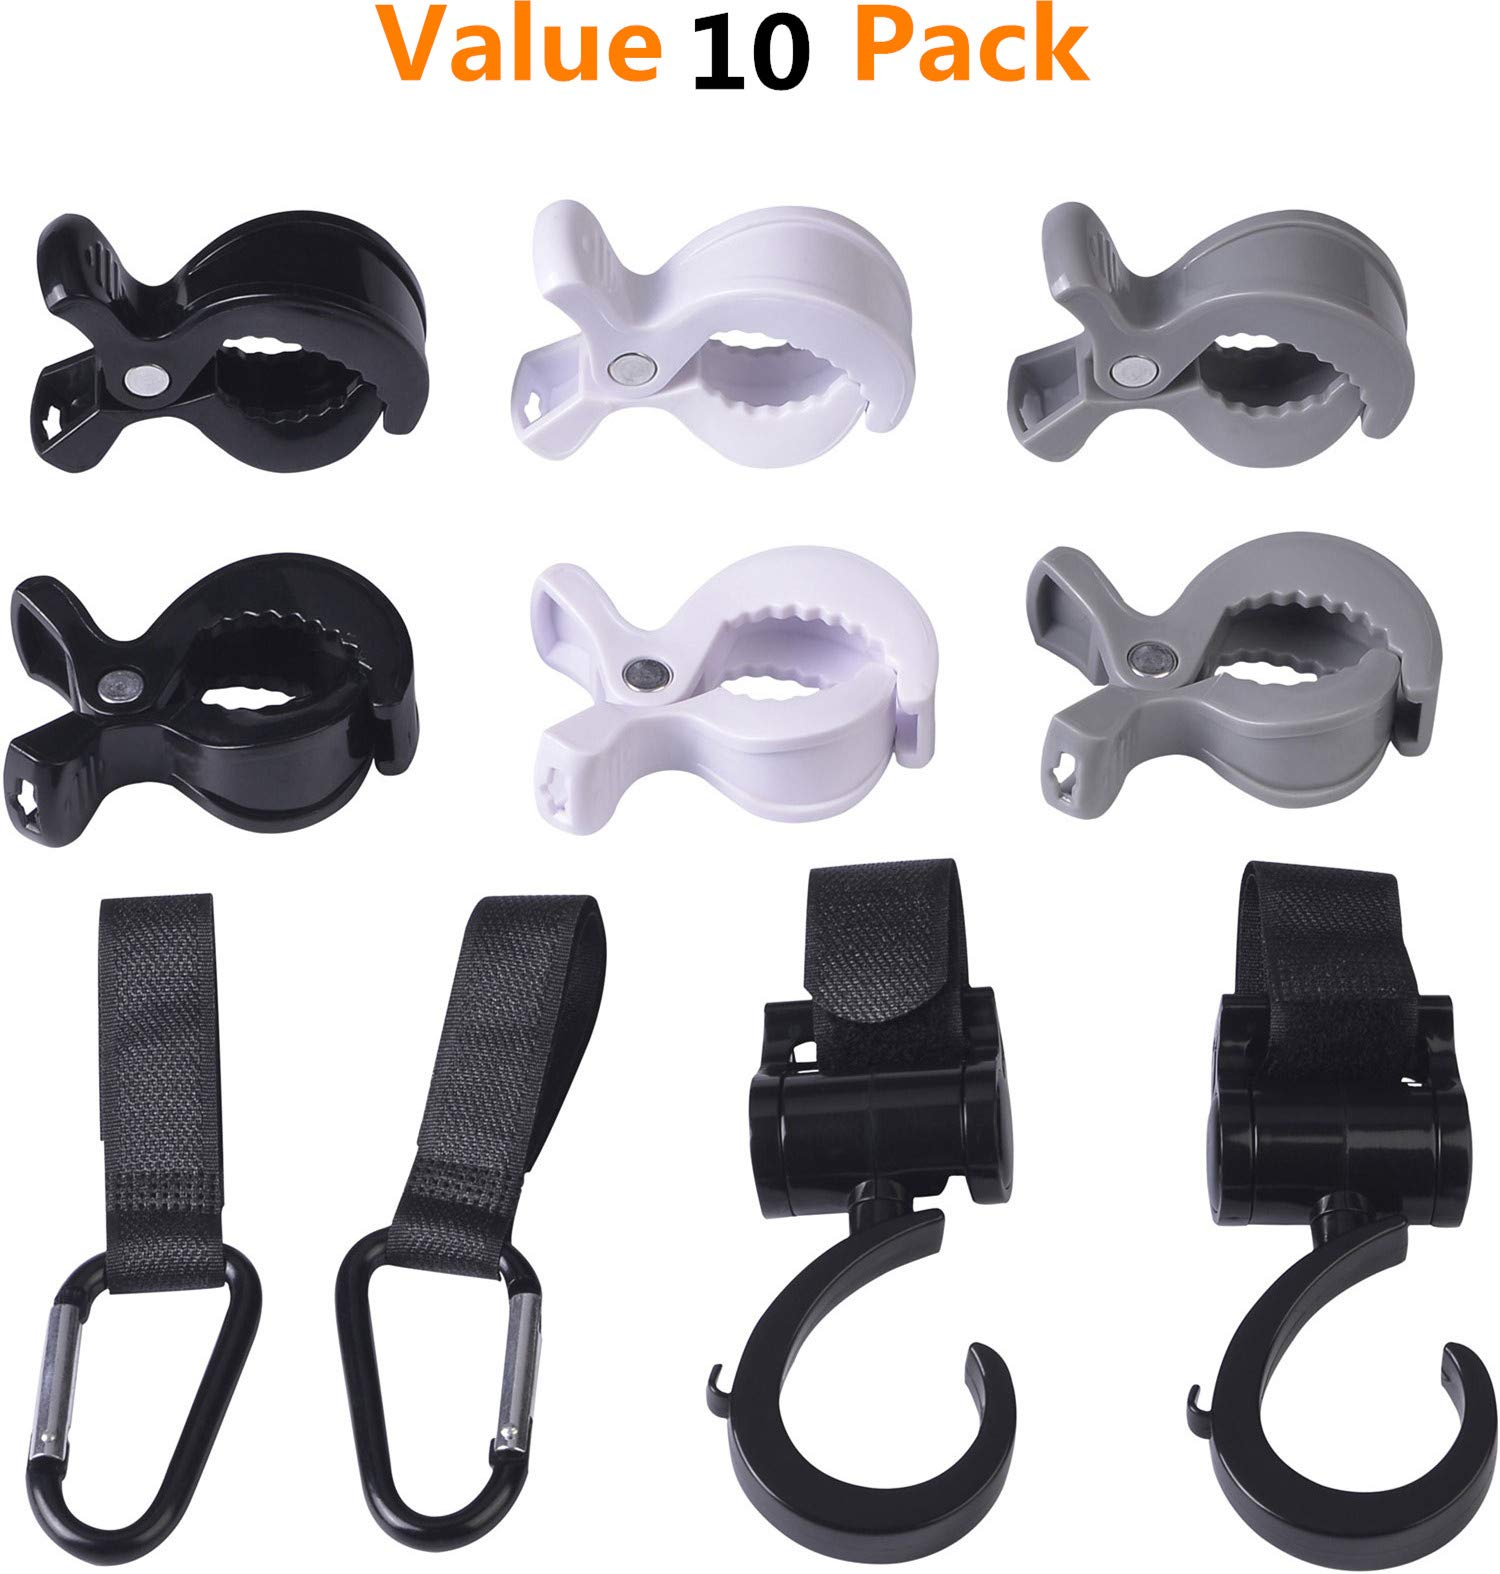 Value 10 Pack Baby Pram pegs and Stroller Hooks Set to Hook Muslin Blanket and Toys, car seat Cover Clips pram Toy Holder, Hanger for Baby Diaper Bags, Shopping Bags, Groceries, Clothing, Purse by Little Jump